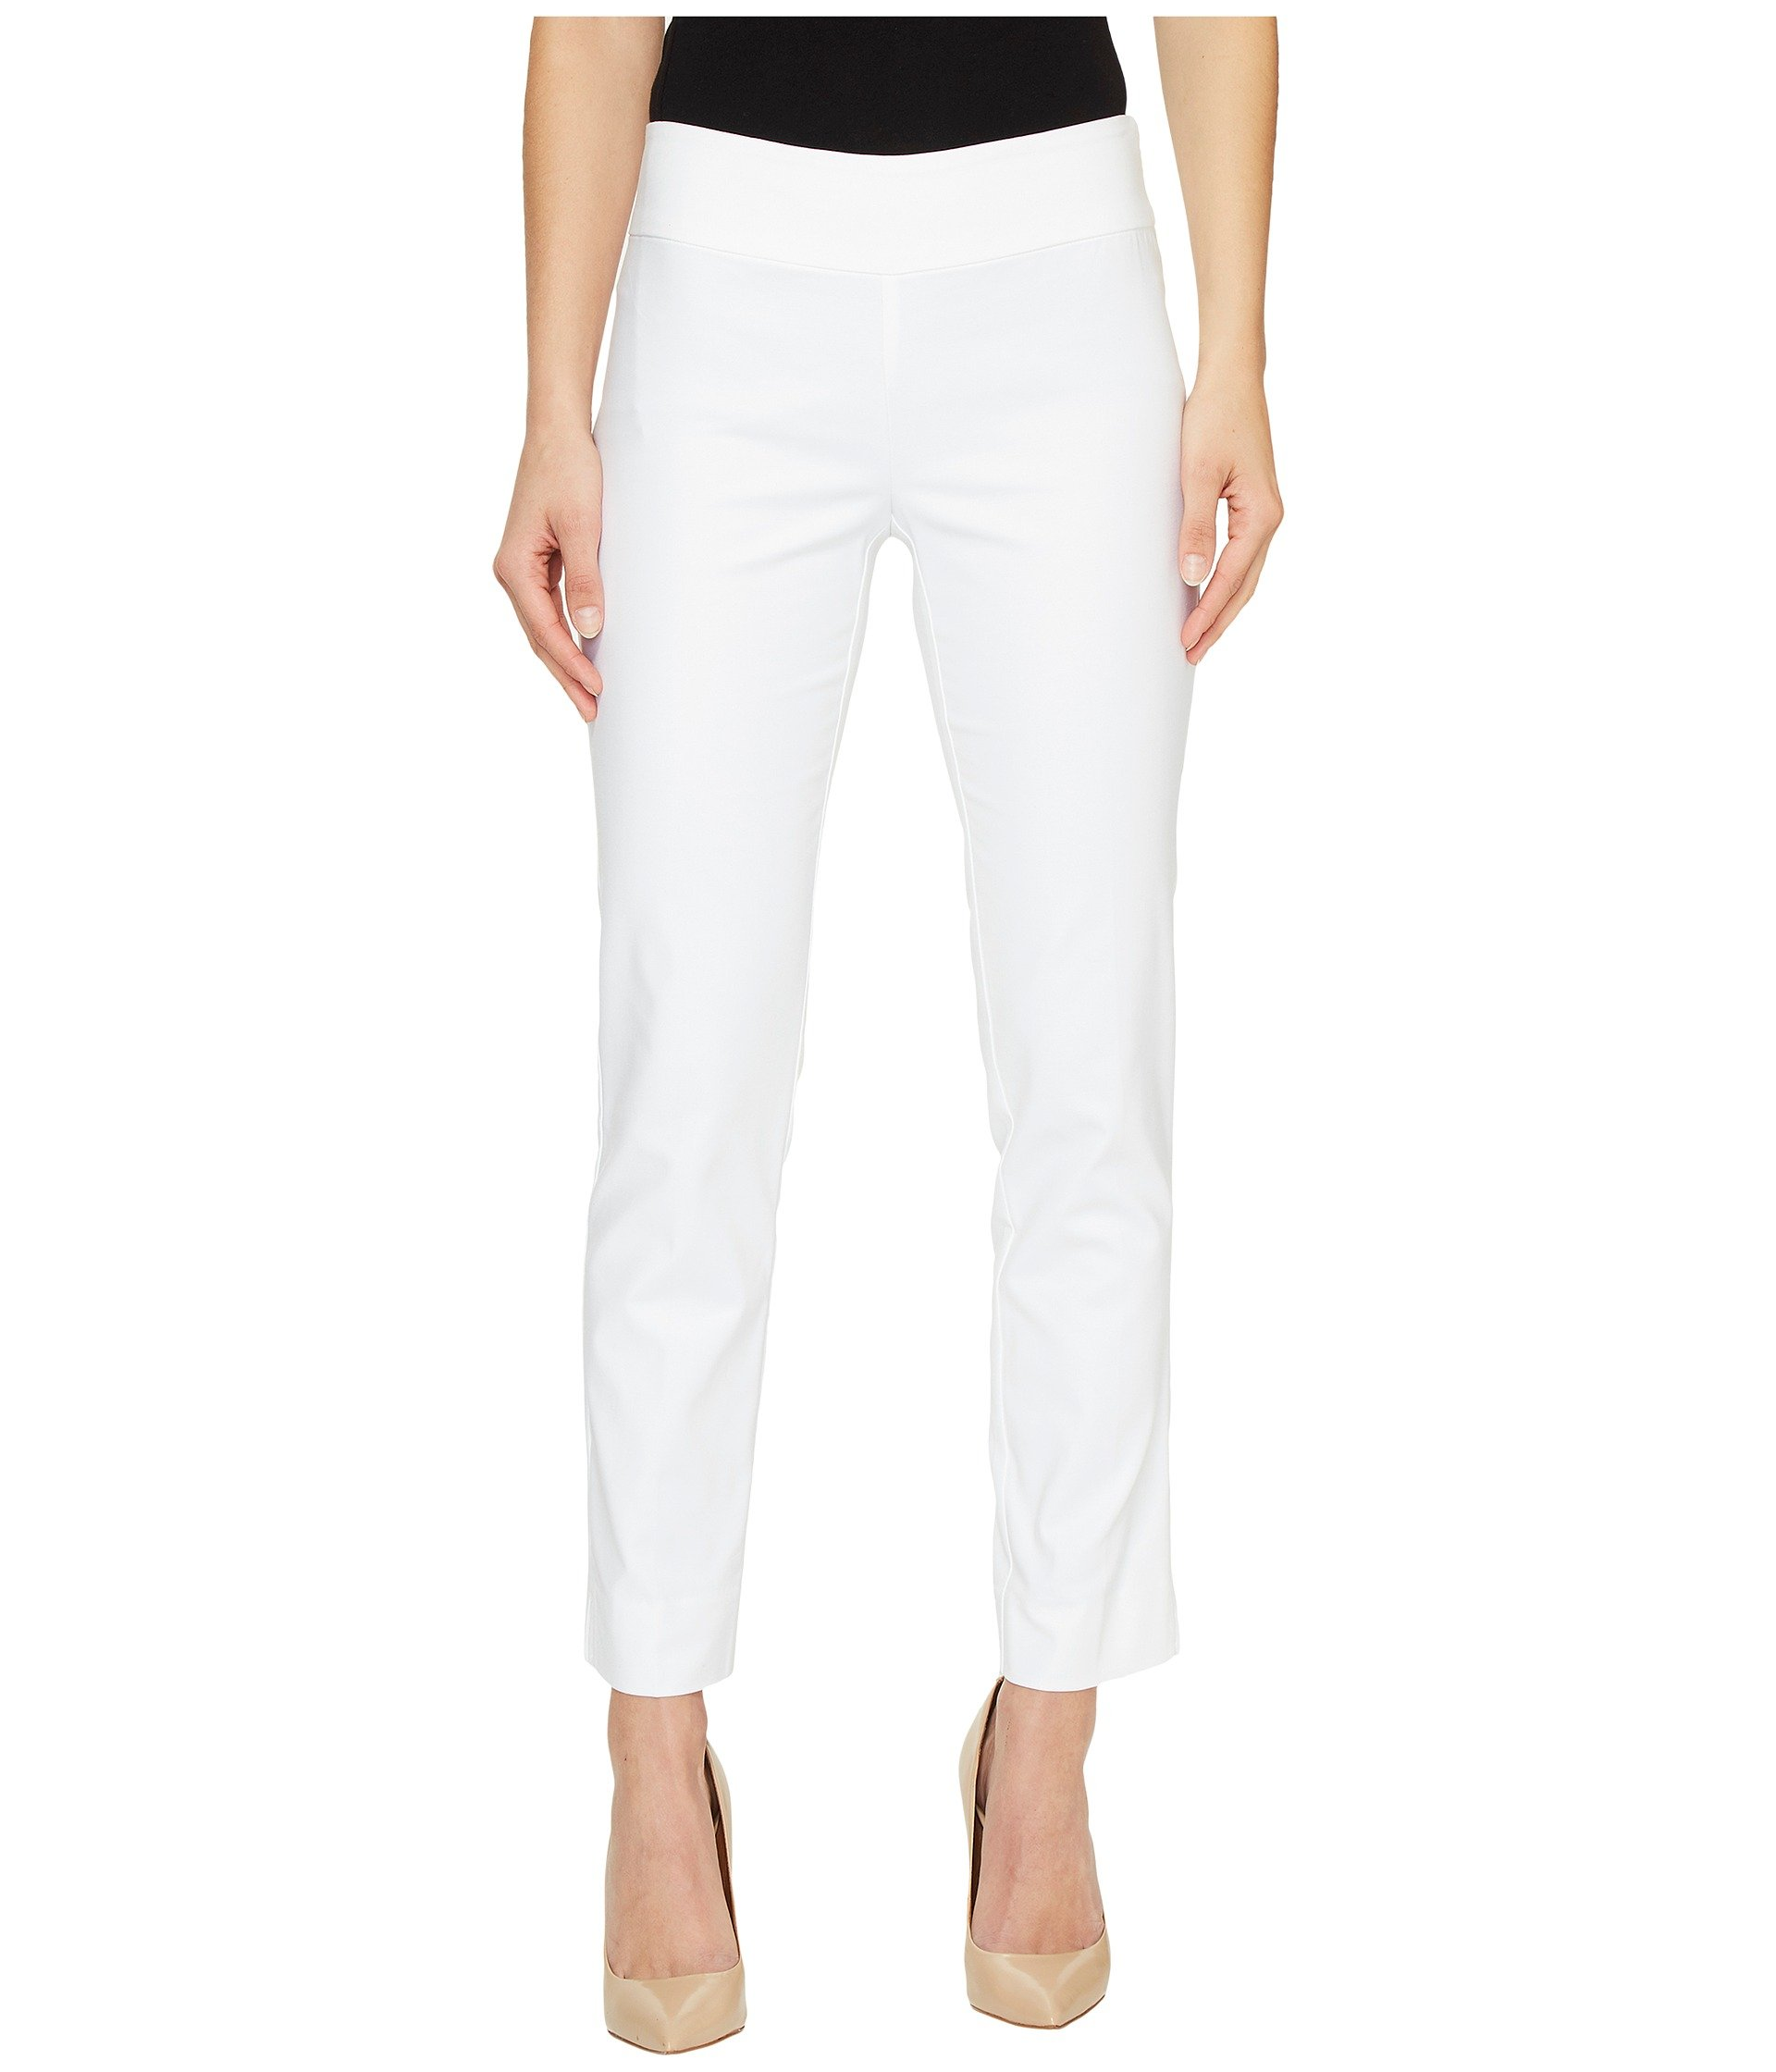 Nic Zoe Clothing Women Shipped Free At Zappos Andrew Smith Slim Fit Chinos Navy 33 The Perfect Pants Modern Ankle